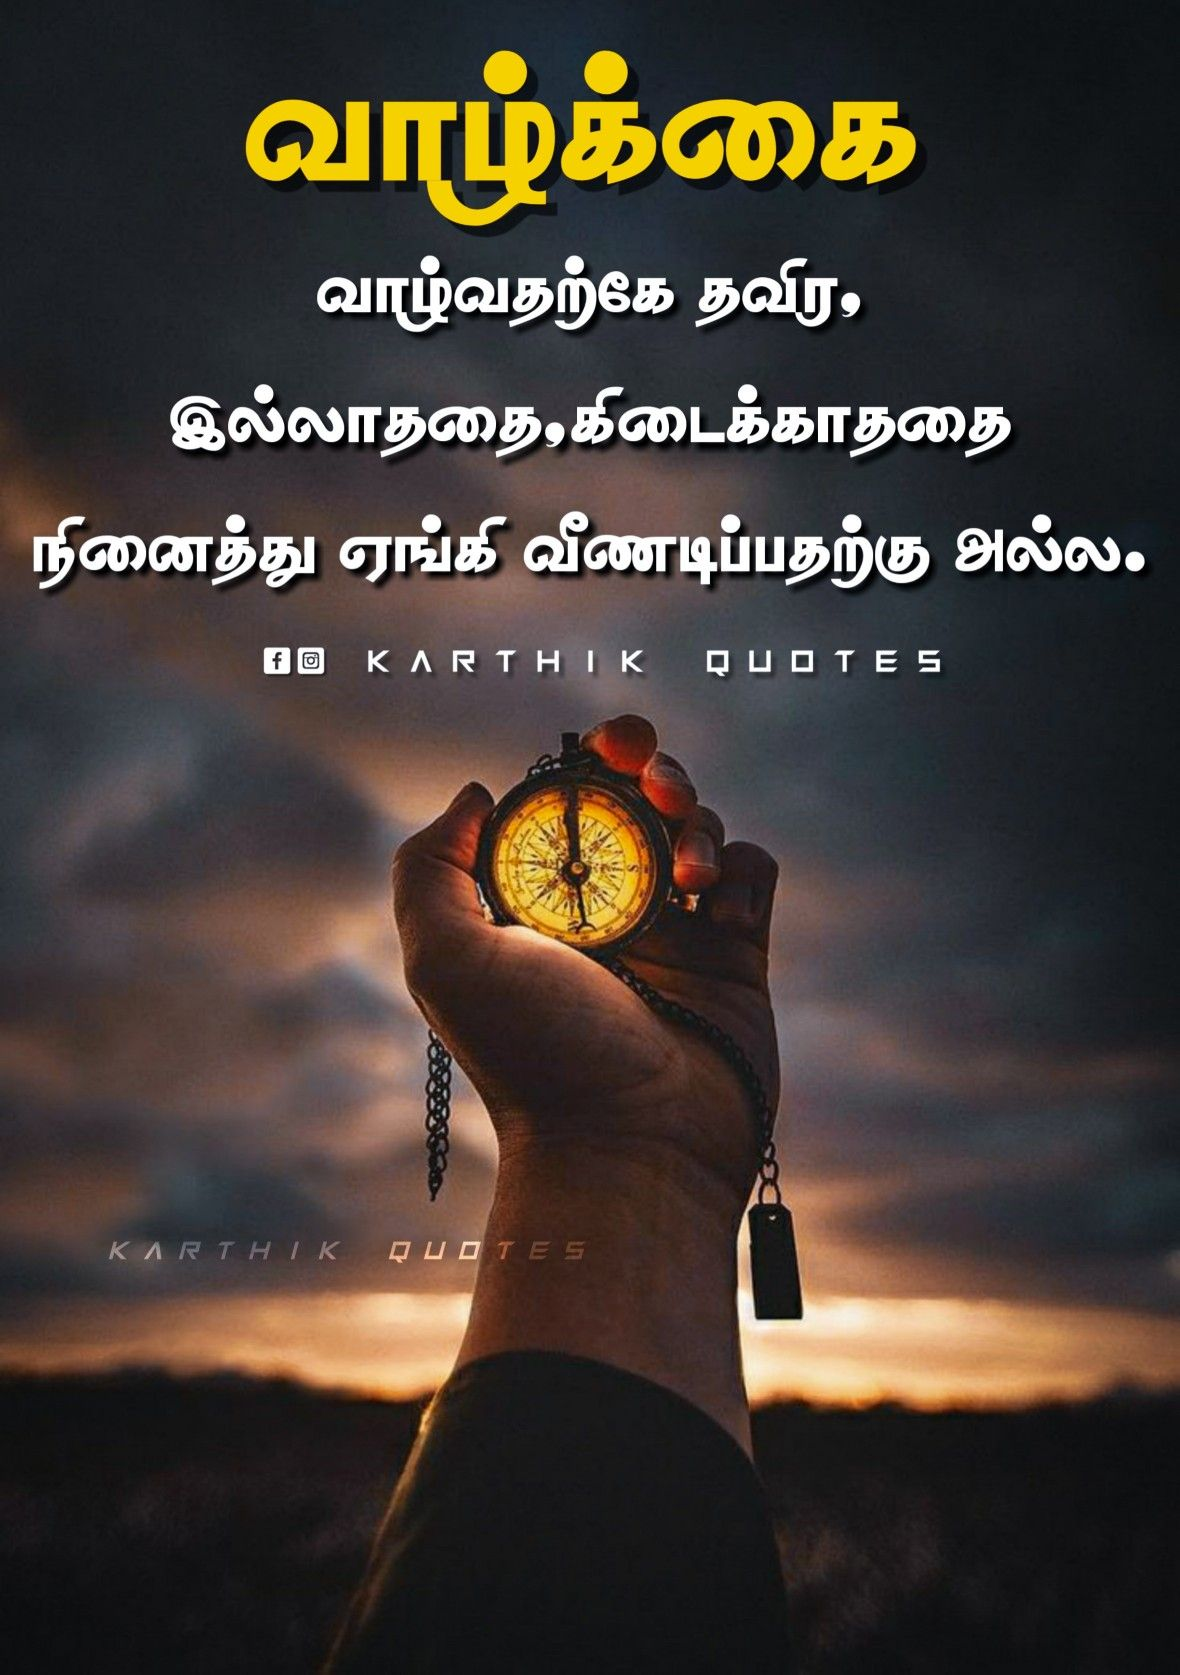 Pin By Lovely Feathers On Truth Osho Quotes On Life Reality Quotes Tamil Love Quotes